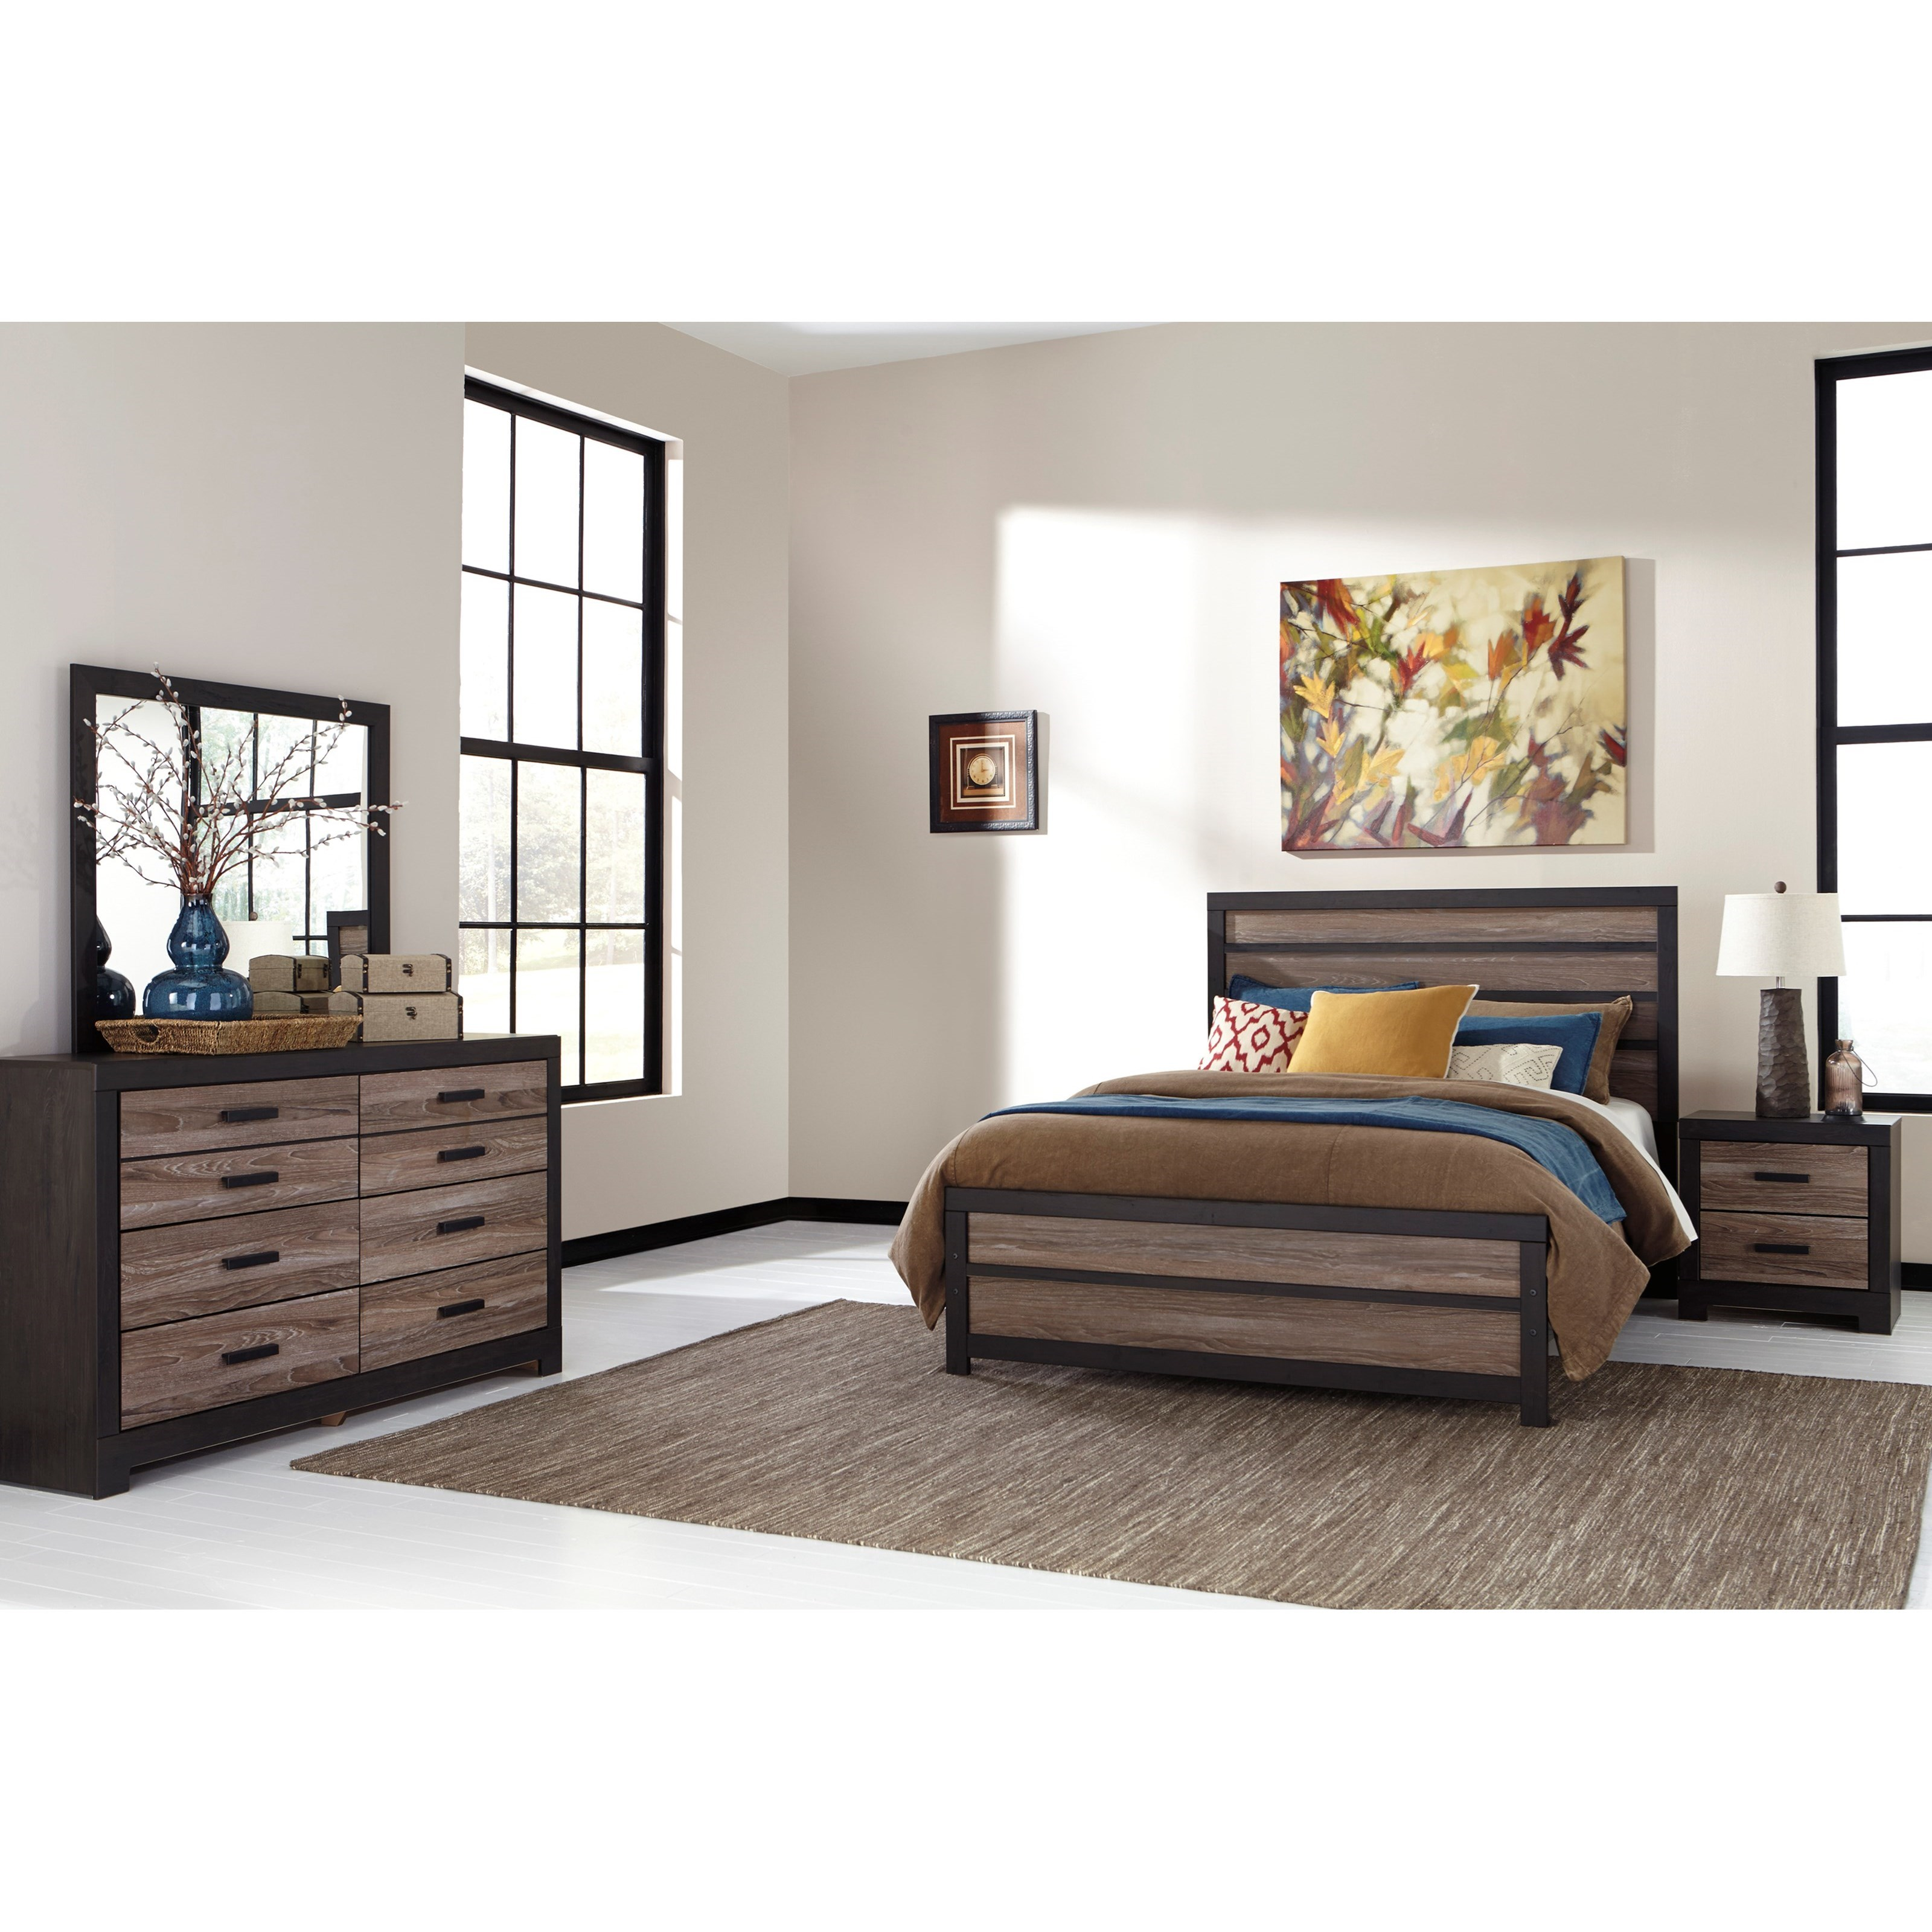 Harlinton Queen Bedroom Group by Signature Design by Ashley at Nassau Furniture and Mattress